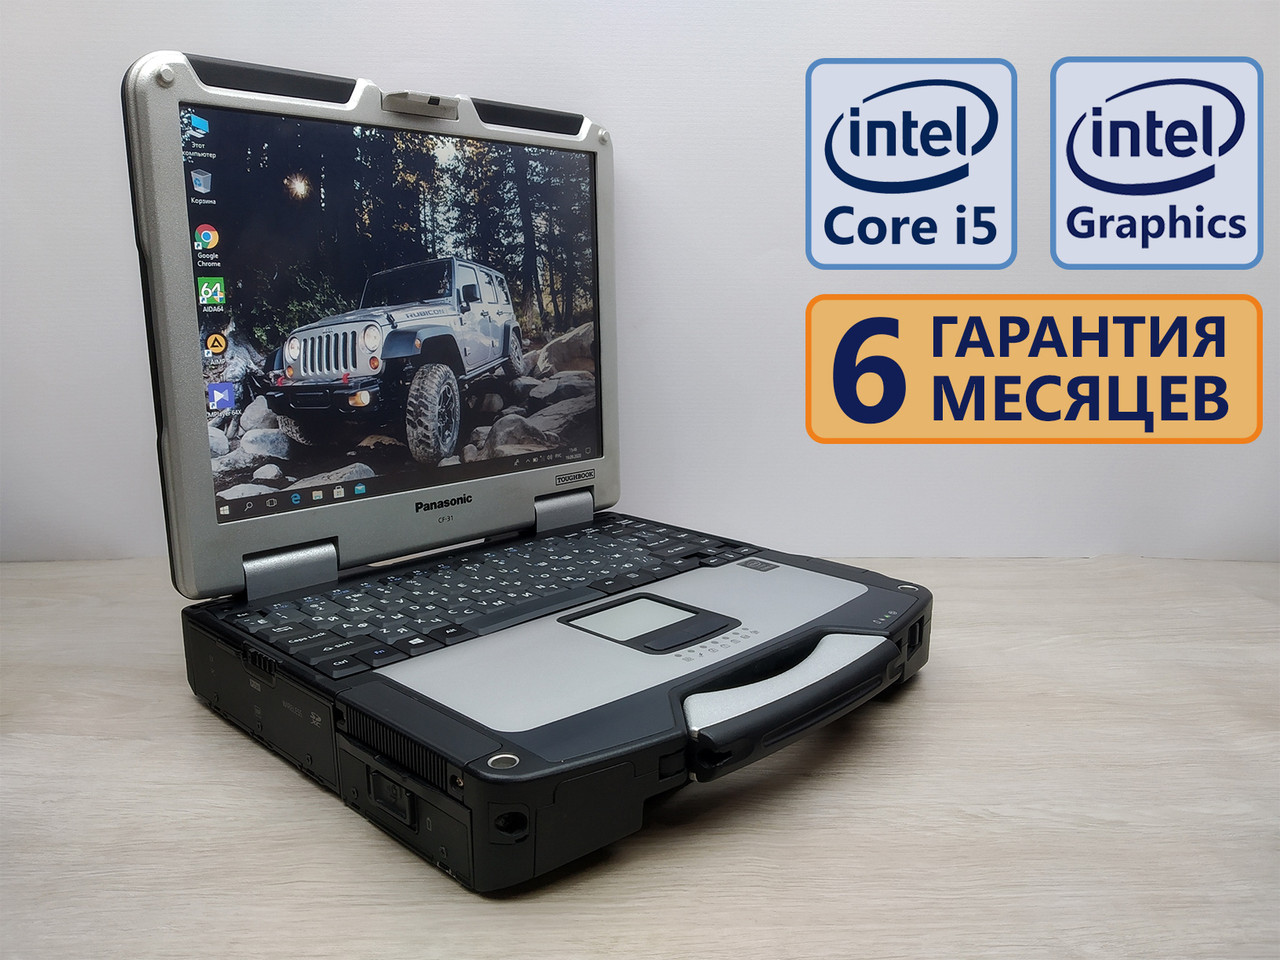 Защищенный Panasonic Toughbook CF-31(14600m9) 13.1 (HD+)/ Core i5-5300U (2(4)x max2.9GHz)/ RAM 8GB/ SSD 120GB/